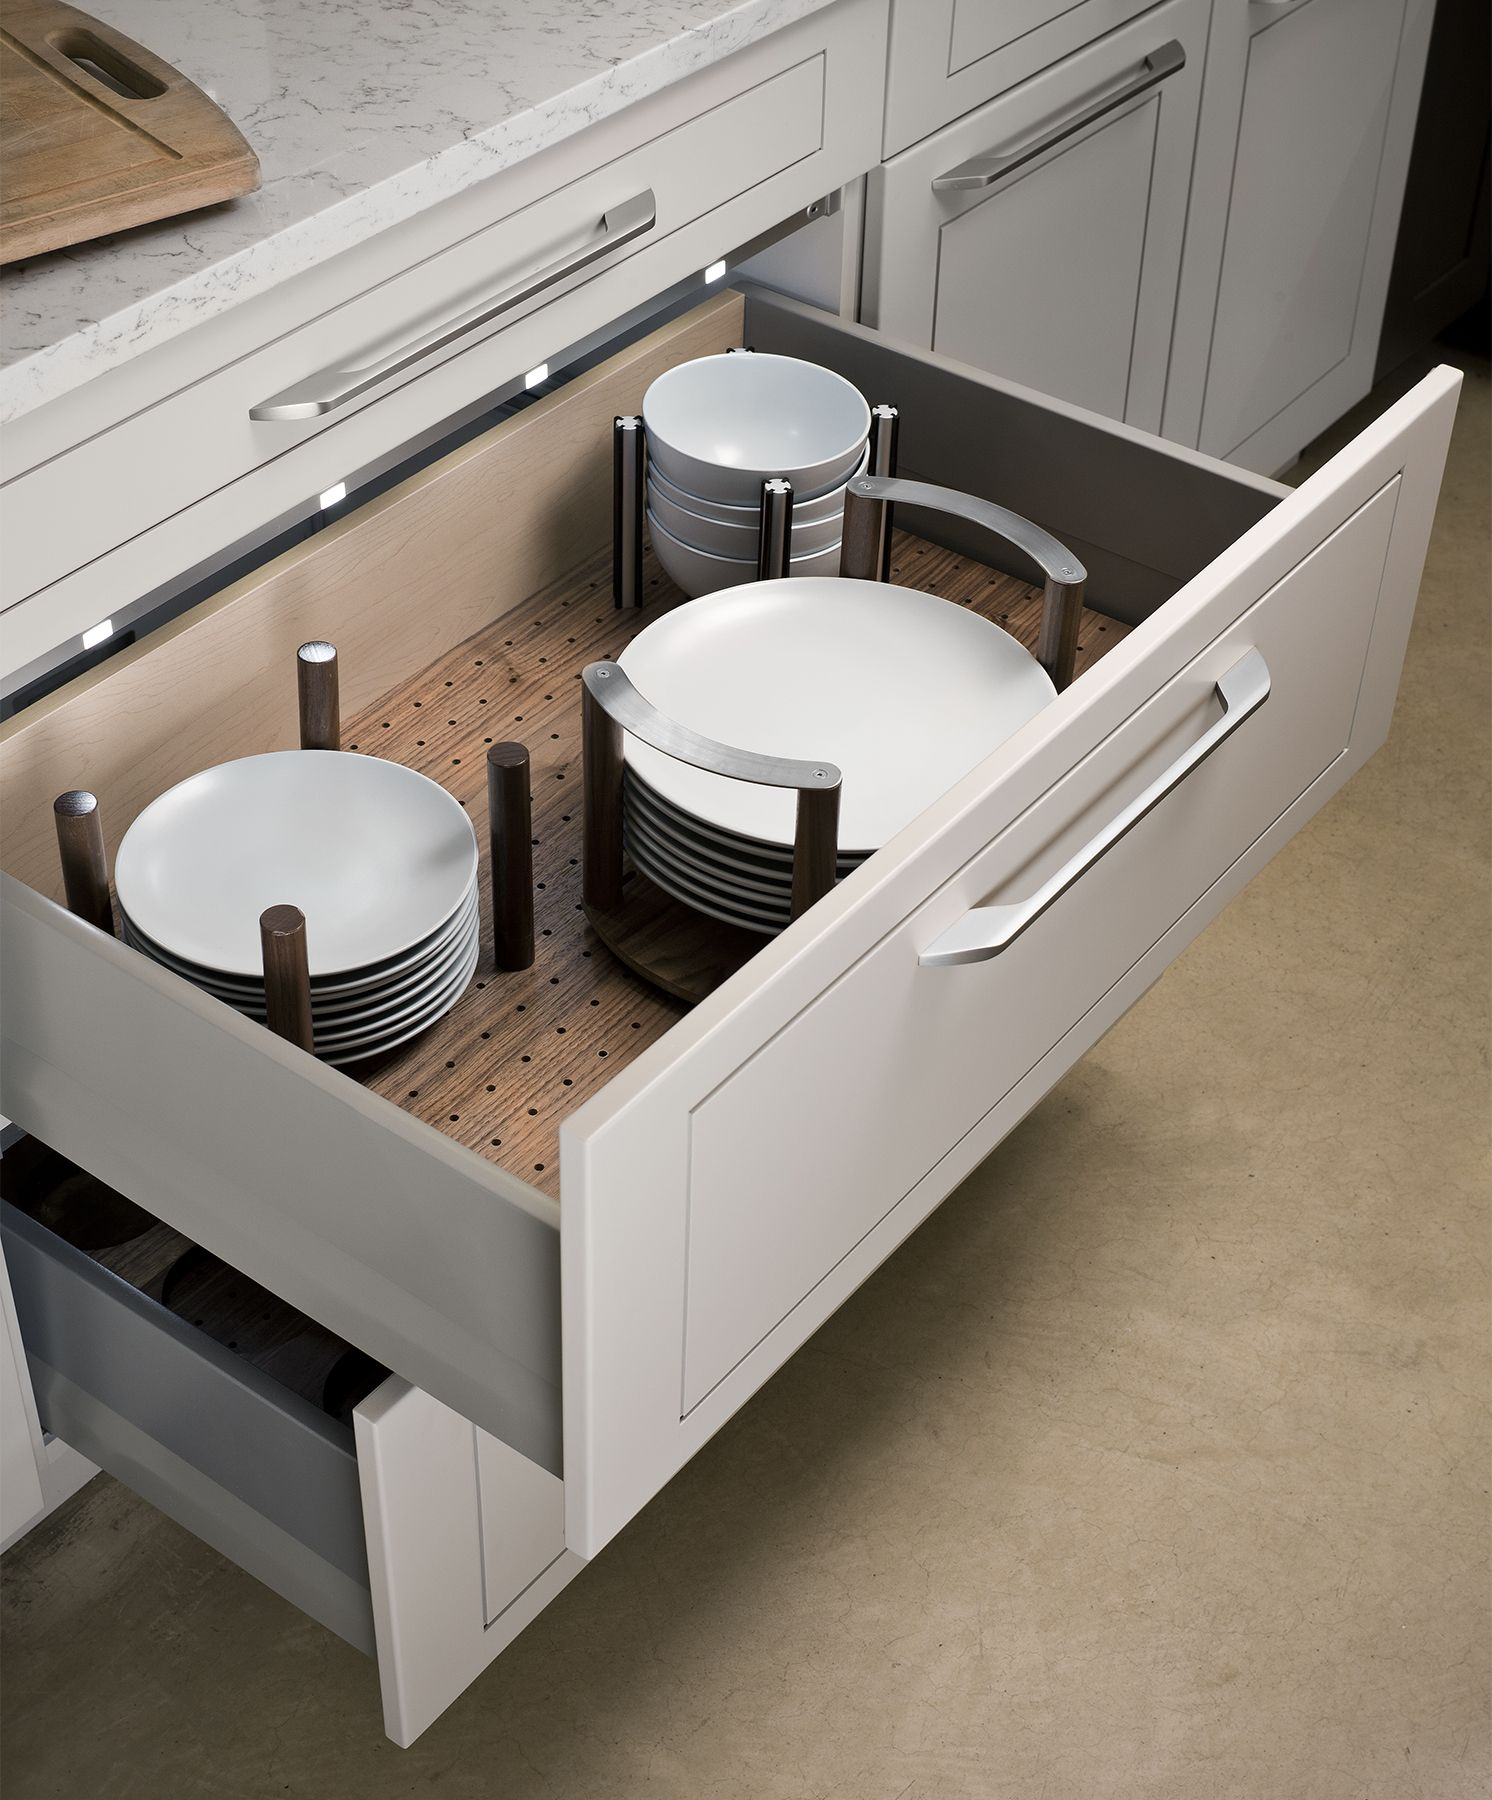 Custom Kitchen Cabinet Accessories: Dish Drawer Pegs, Important If No Upper Cabinets, Possibly